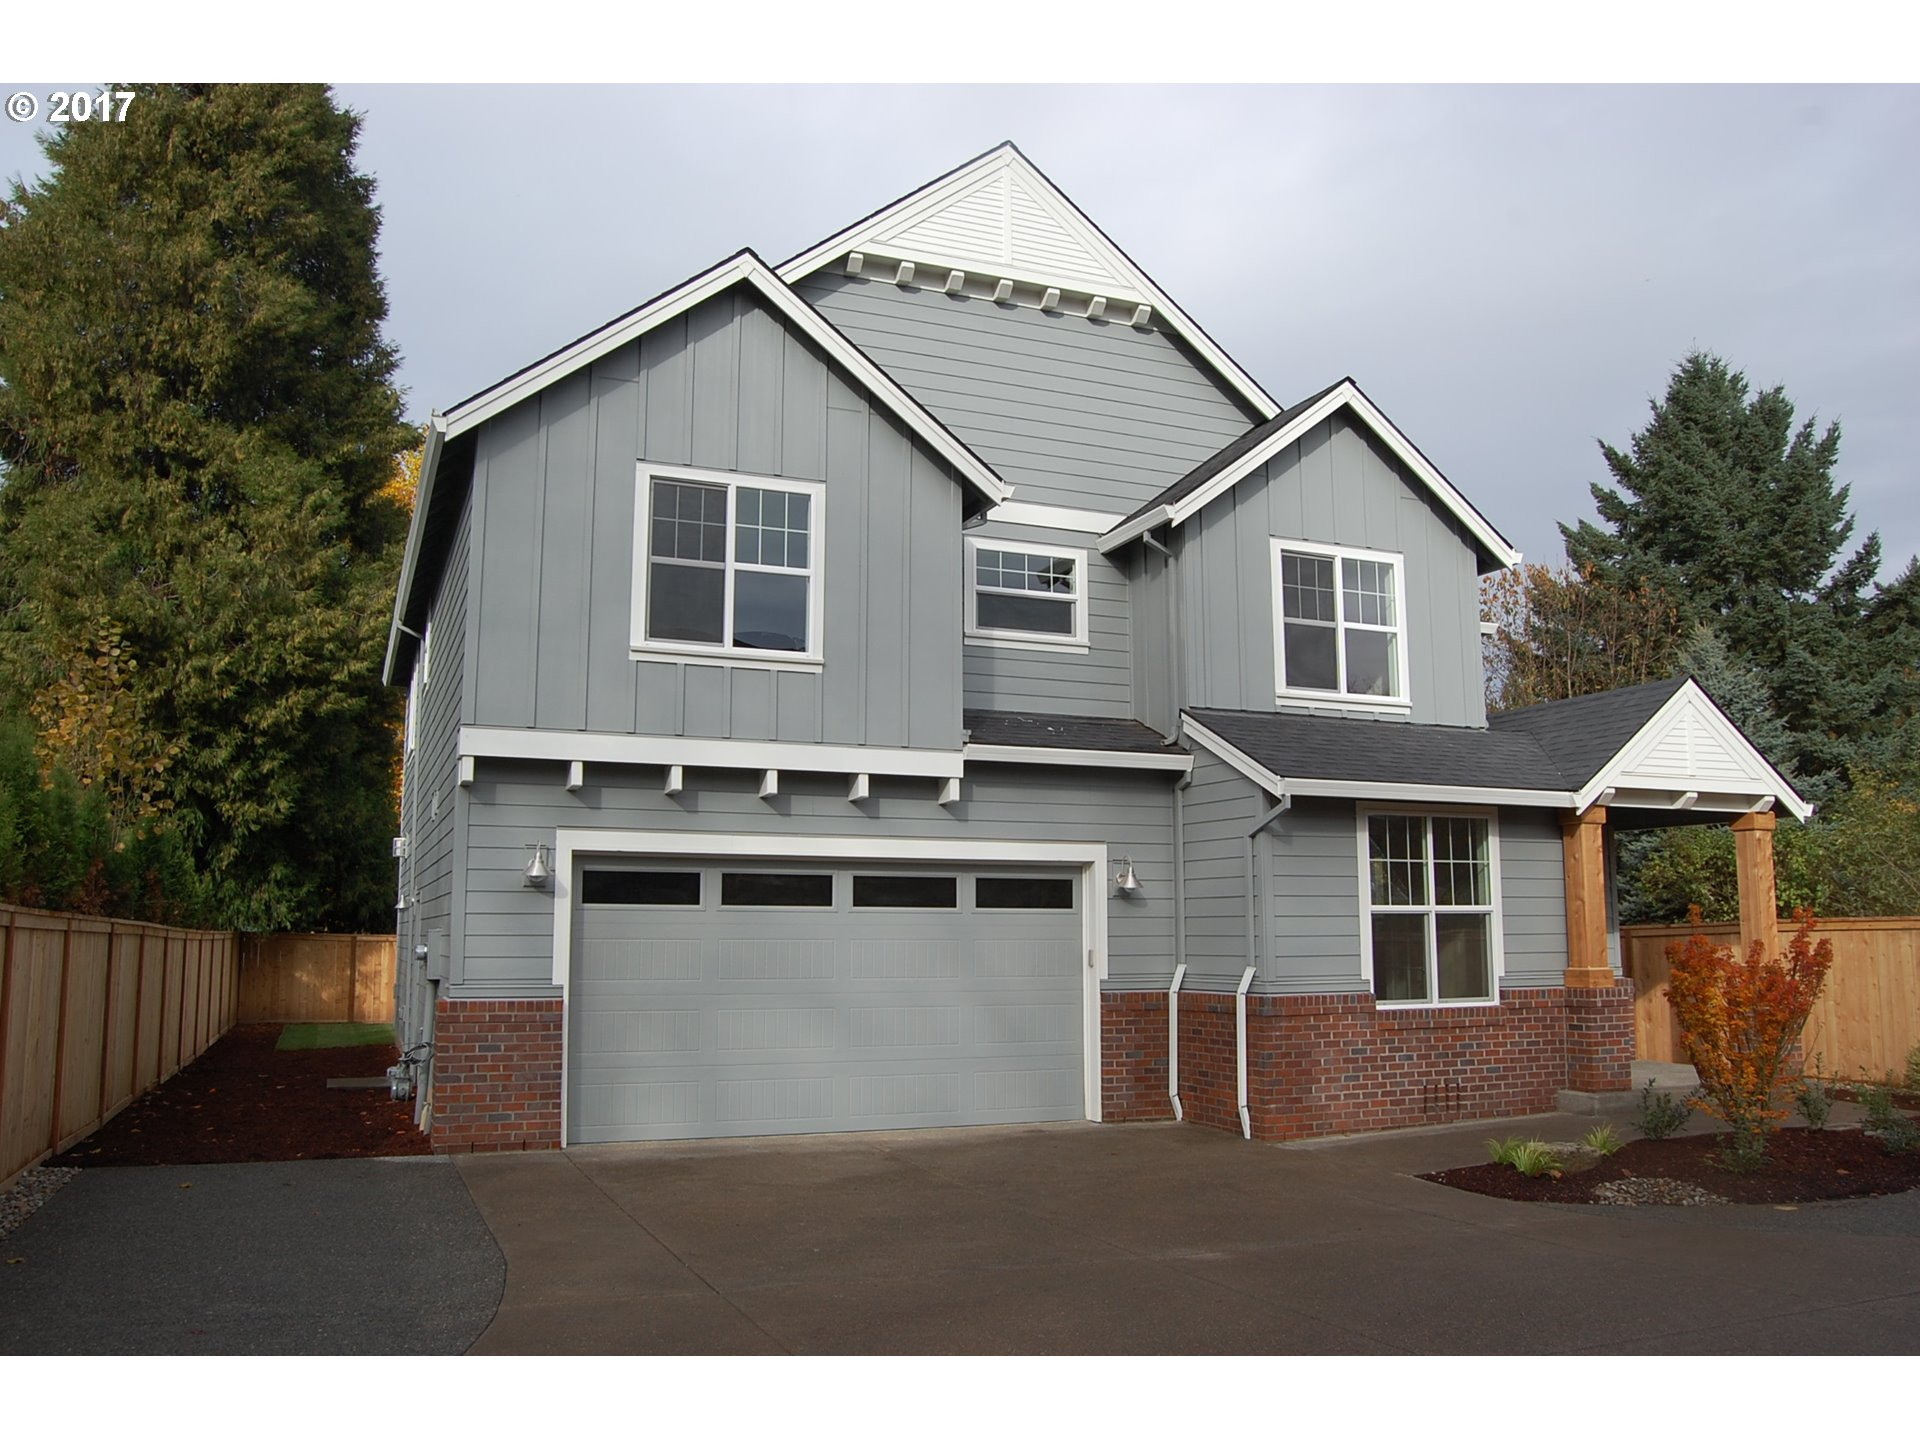 2130 5th AVE, West Linn, OR 97068